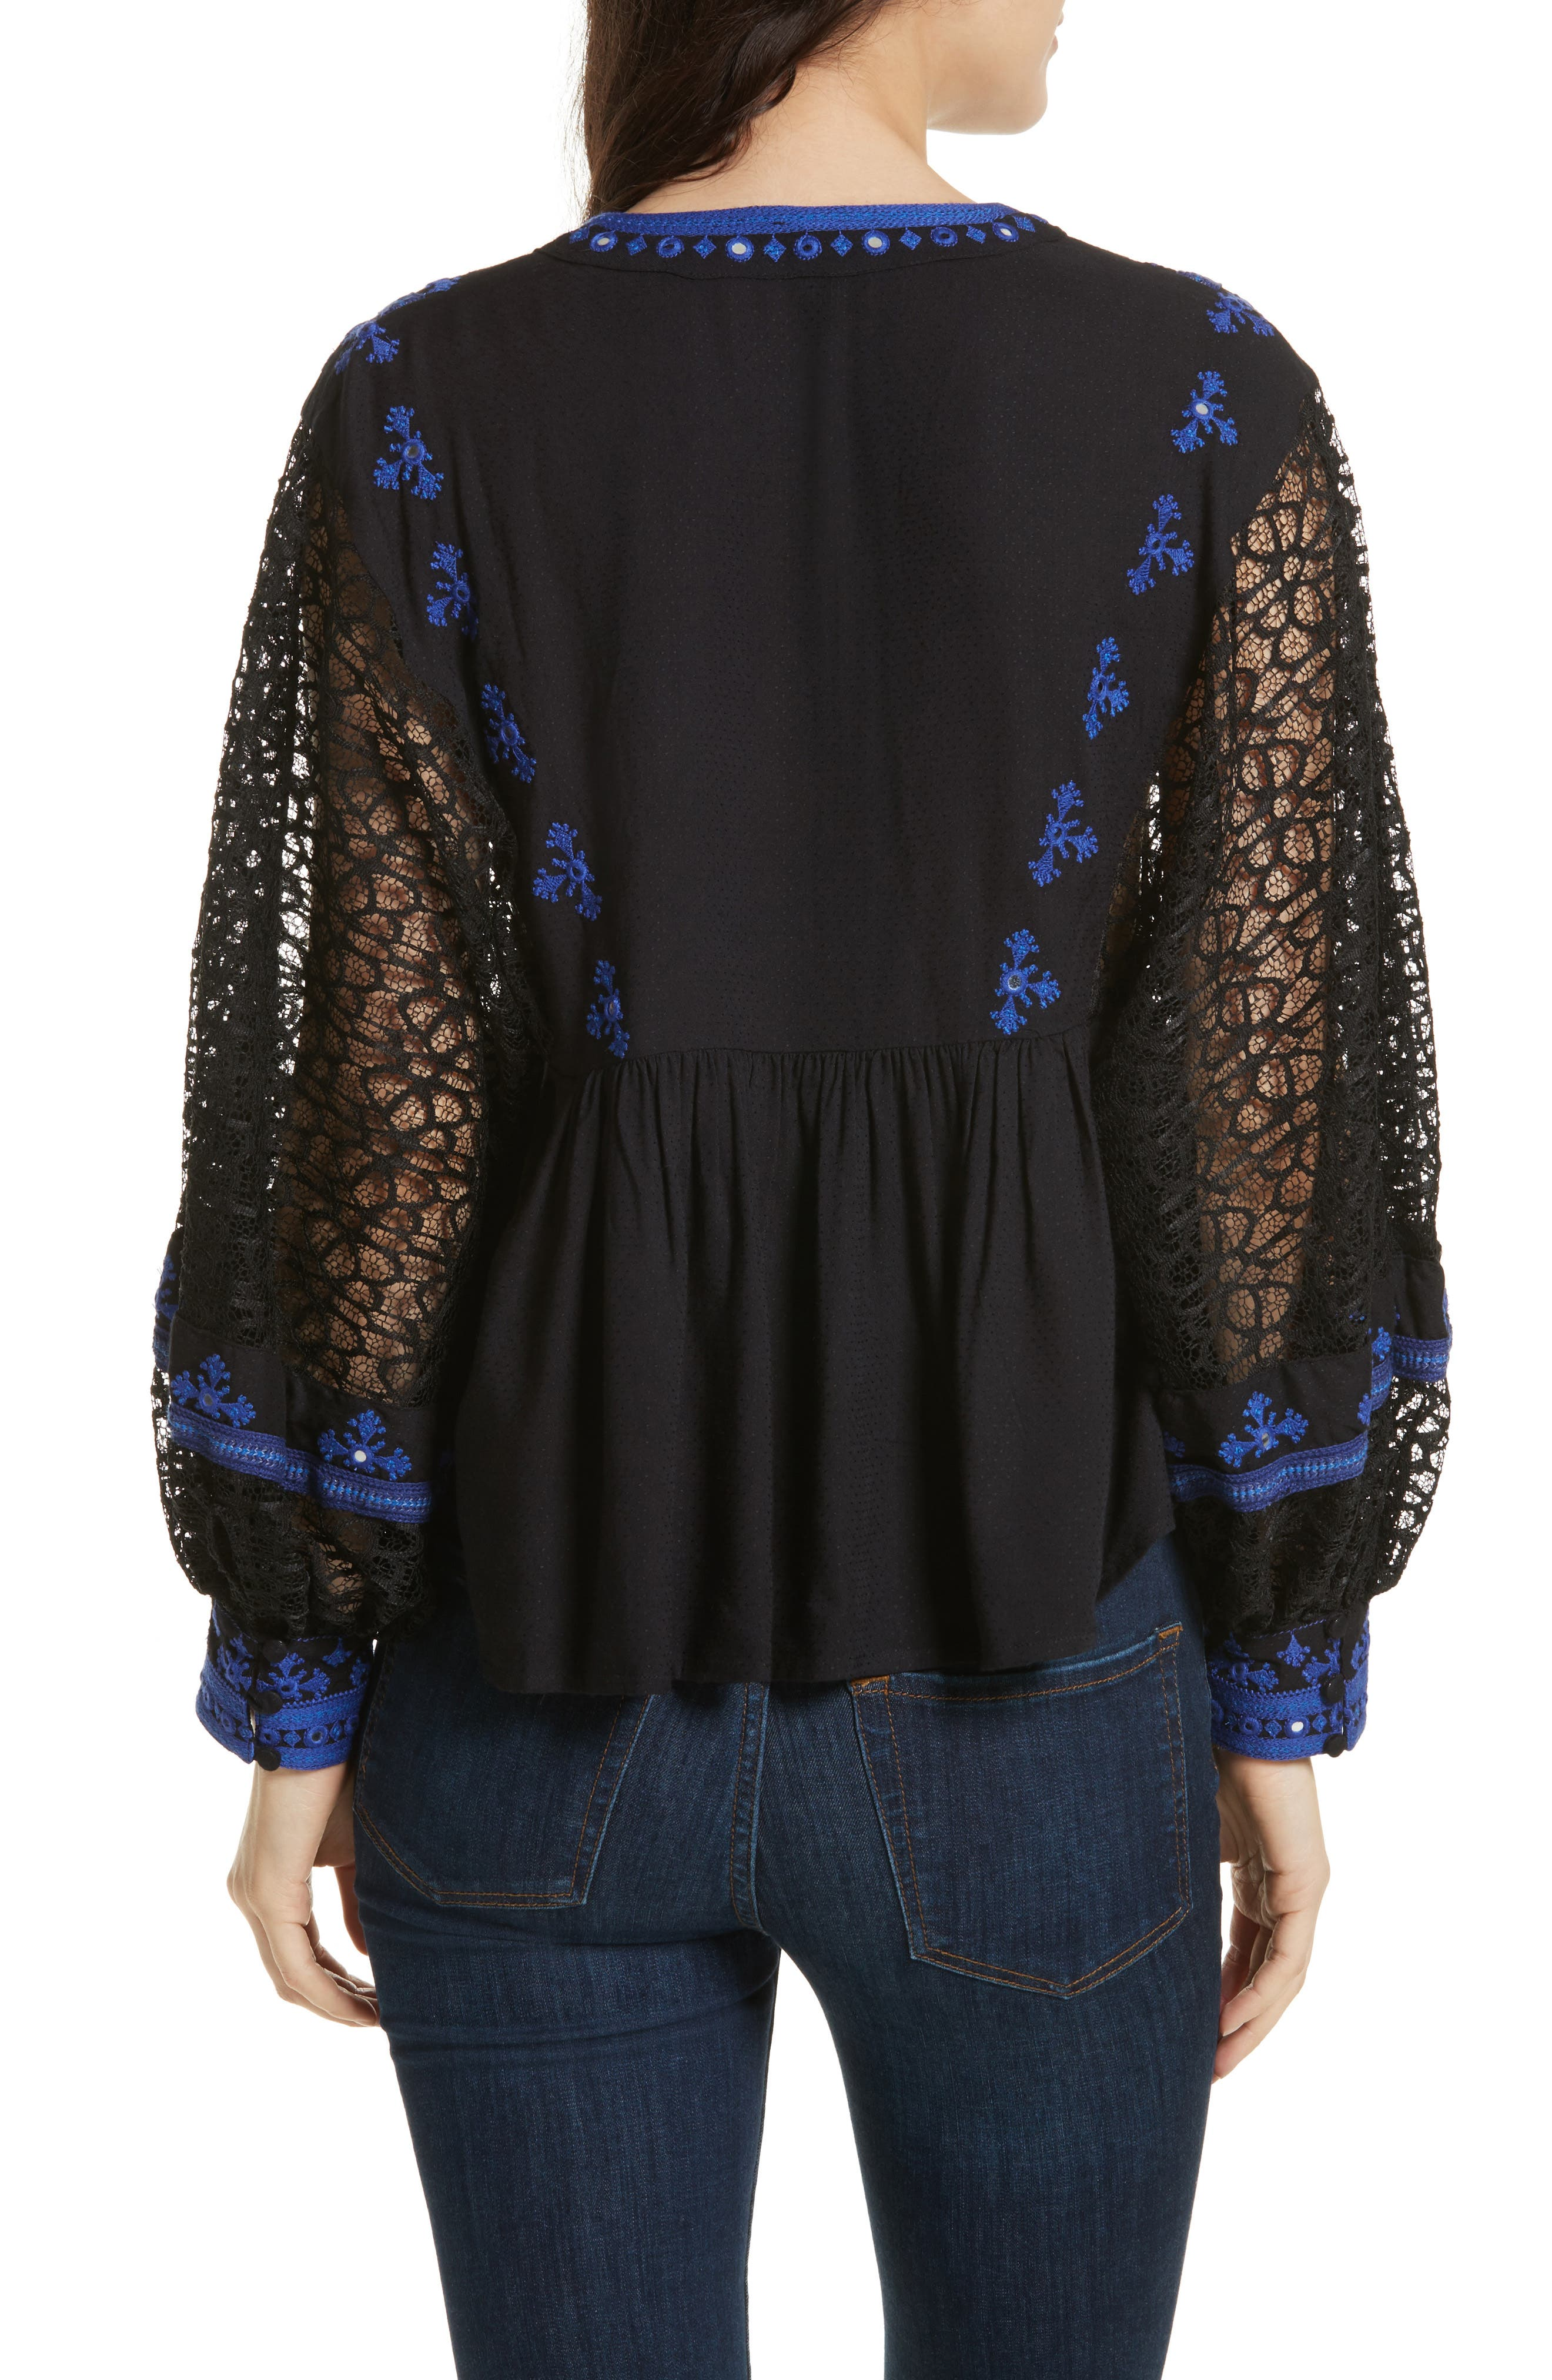 Boogie All Night Blouse,                             Alternate thumbnail 2, color,                             001